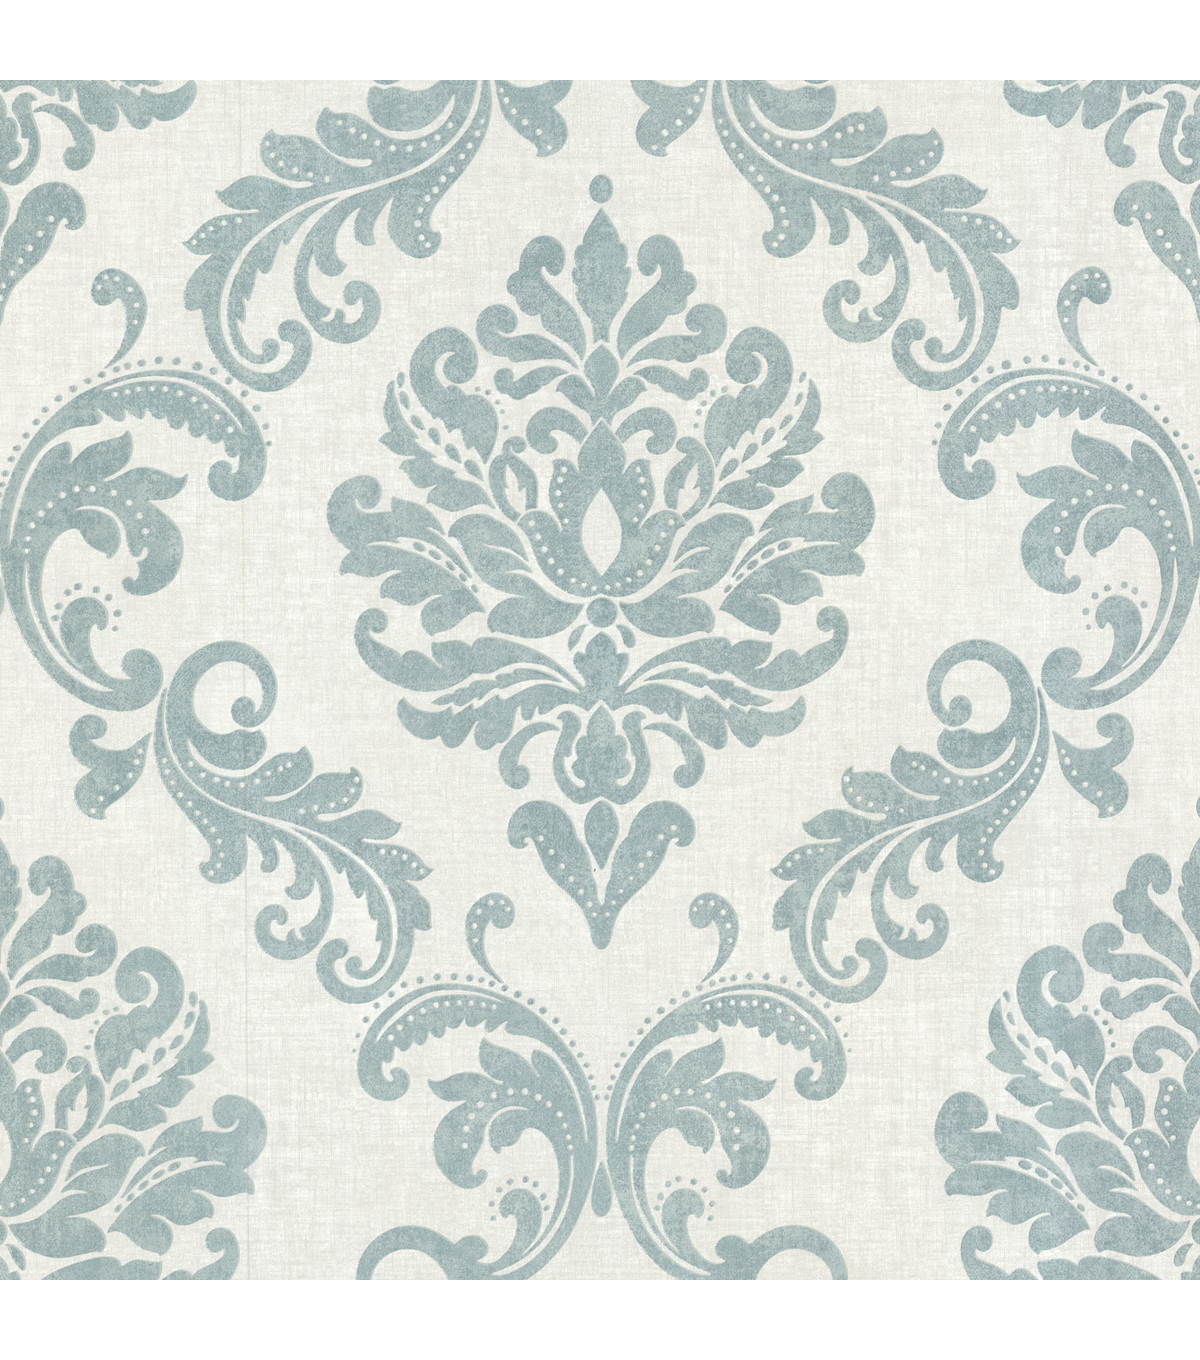 Sebastion Aqua Damask Wallpaper Sample